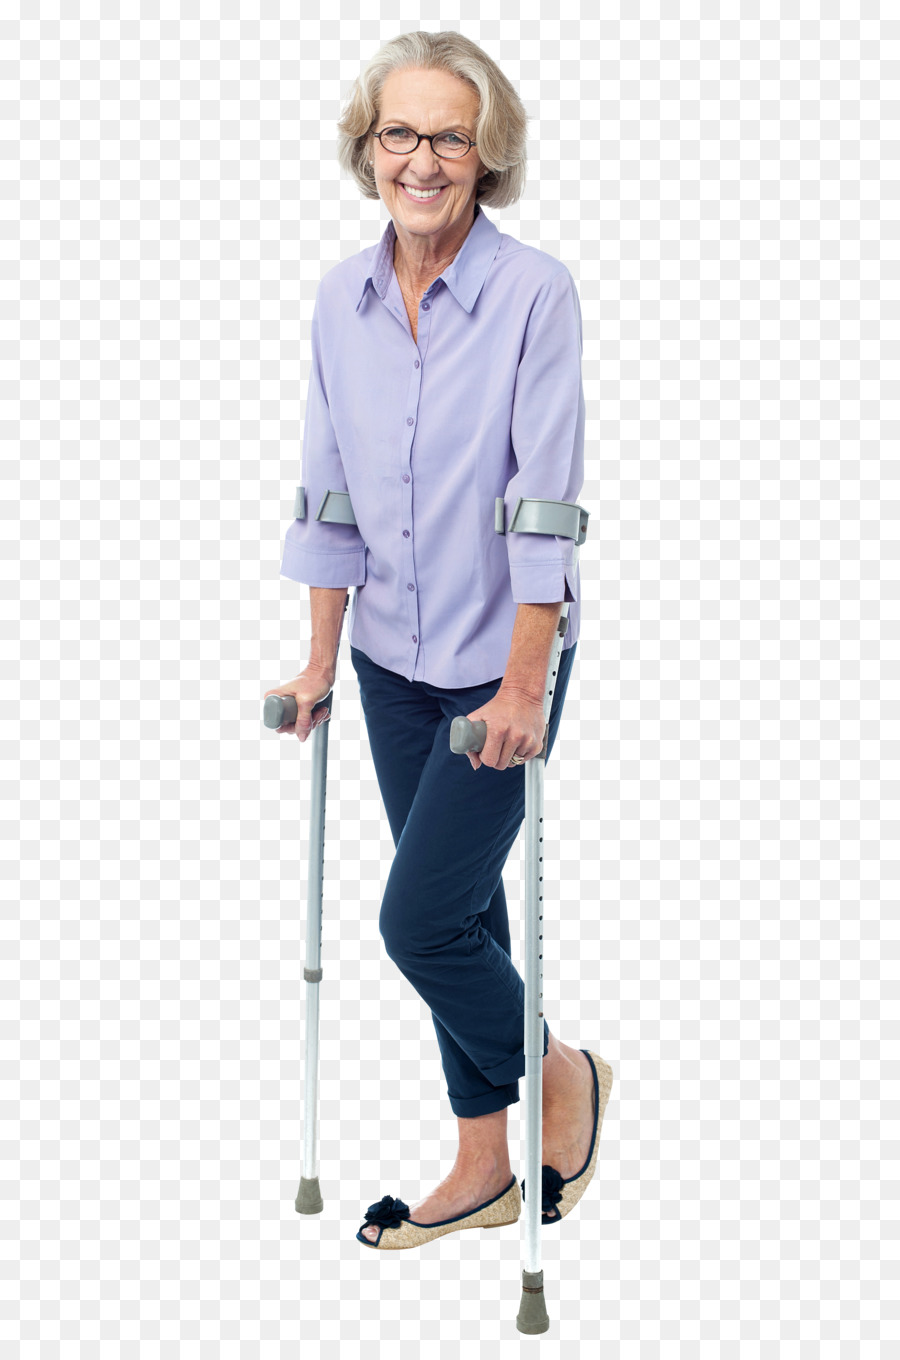 standing clipart Crutch Disability Old age